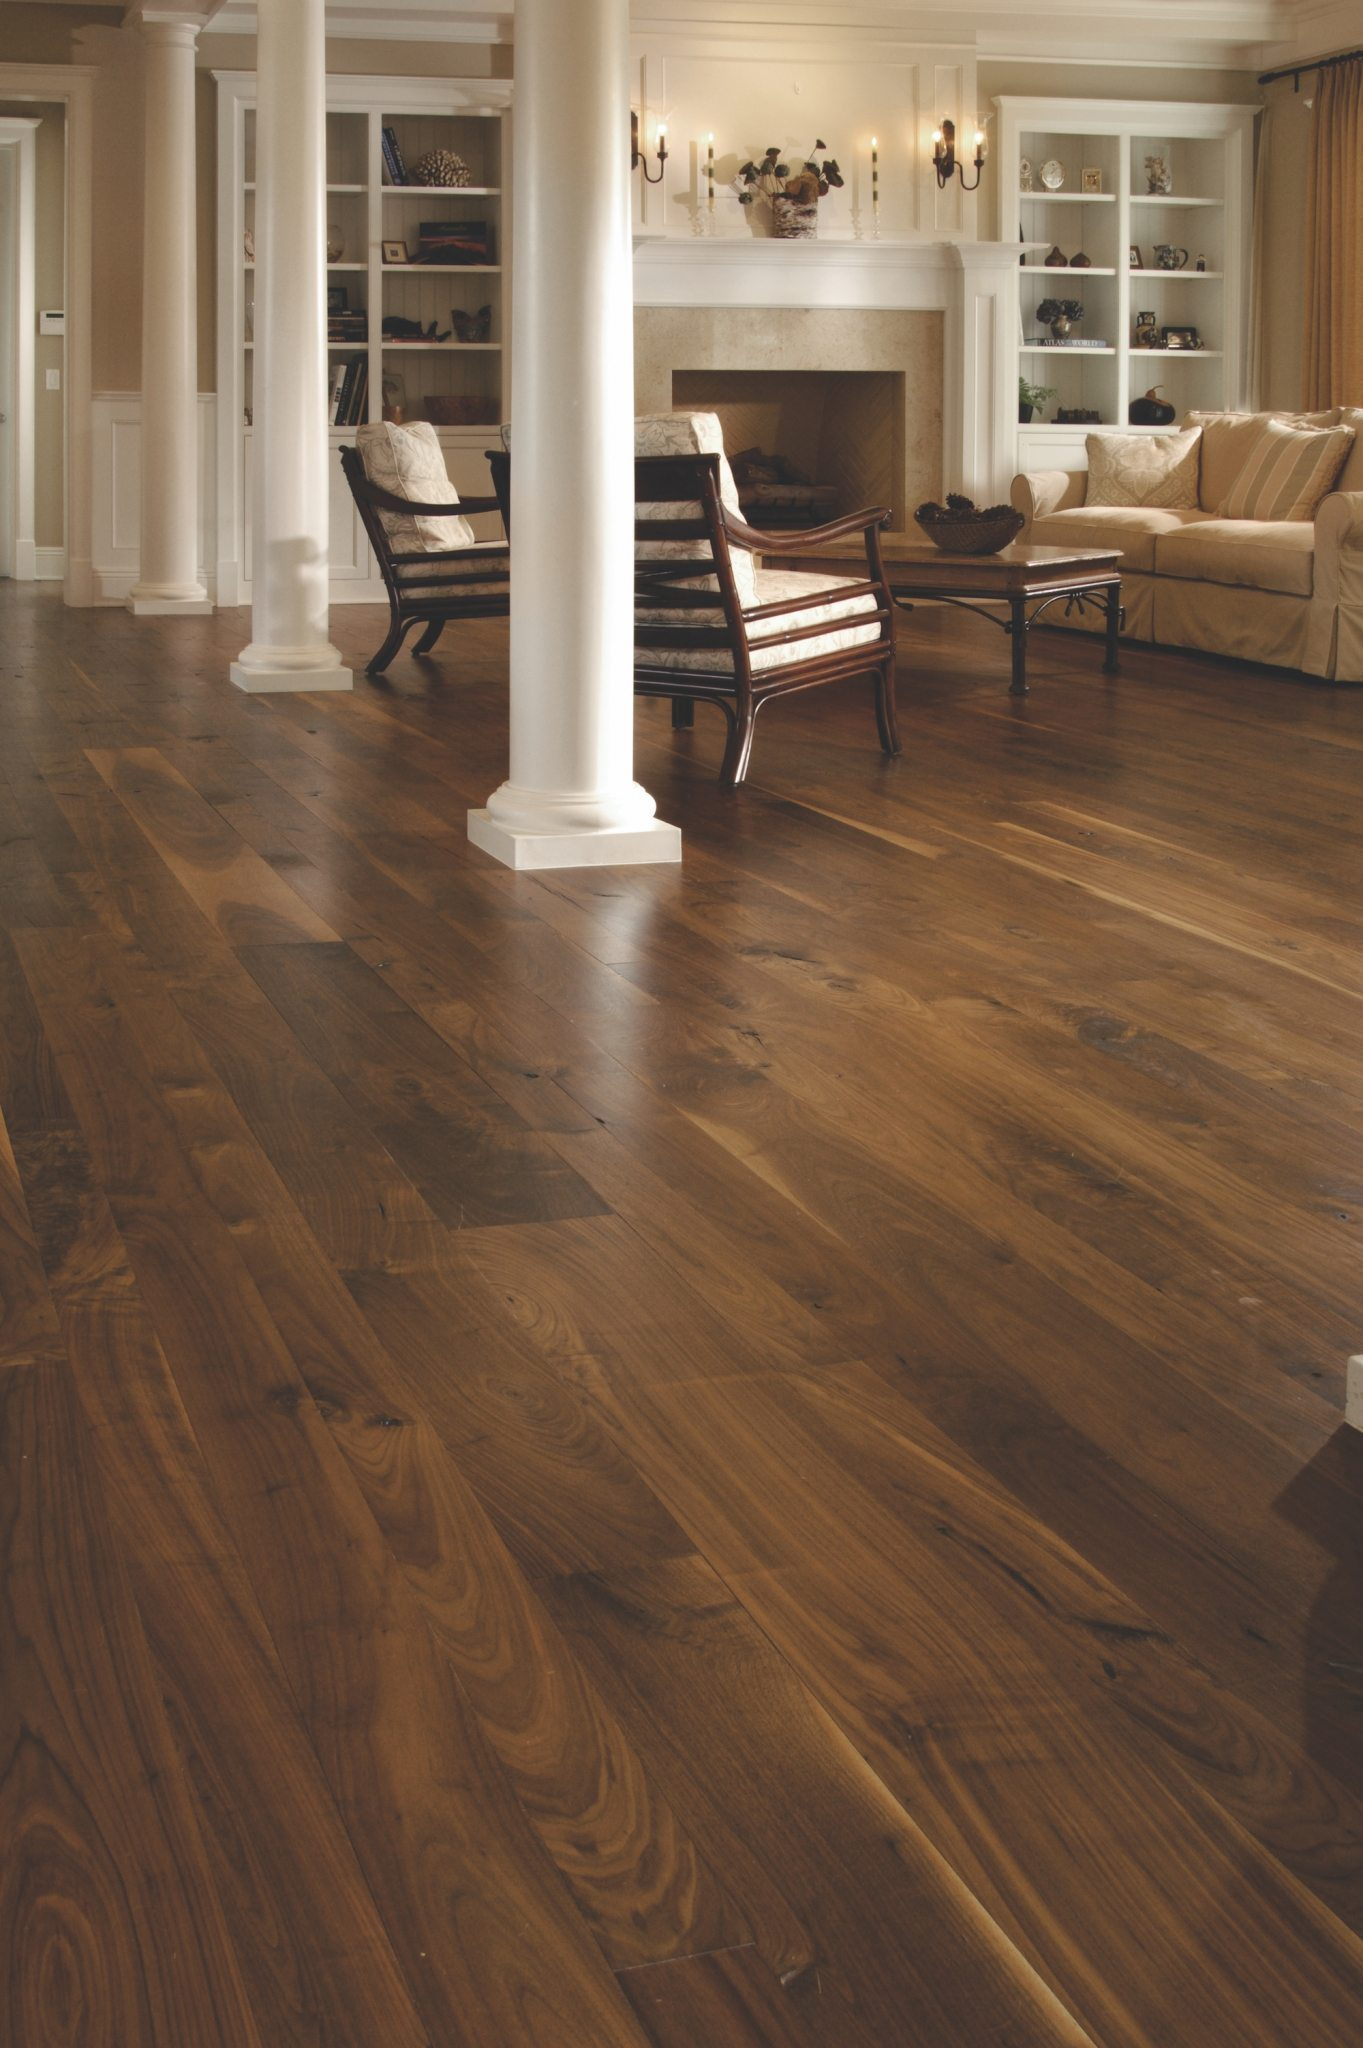 Walnut Flooring In A Living Room Carlisle Wide Plank Floors